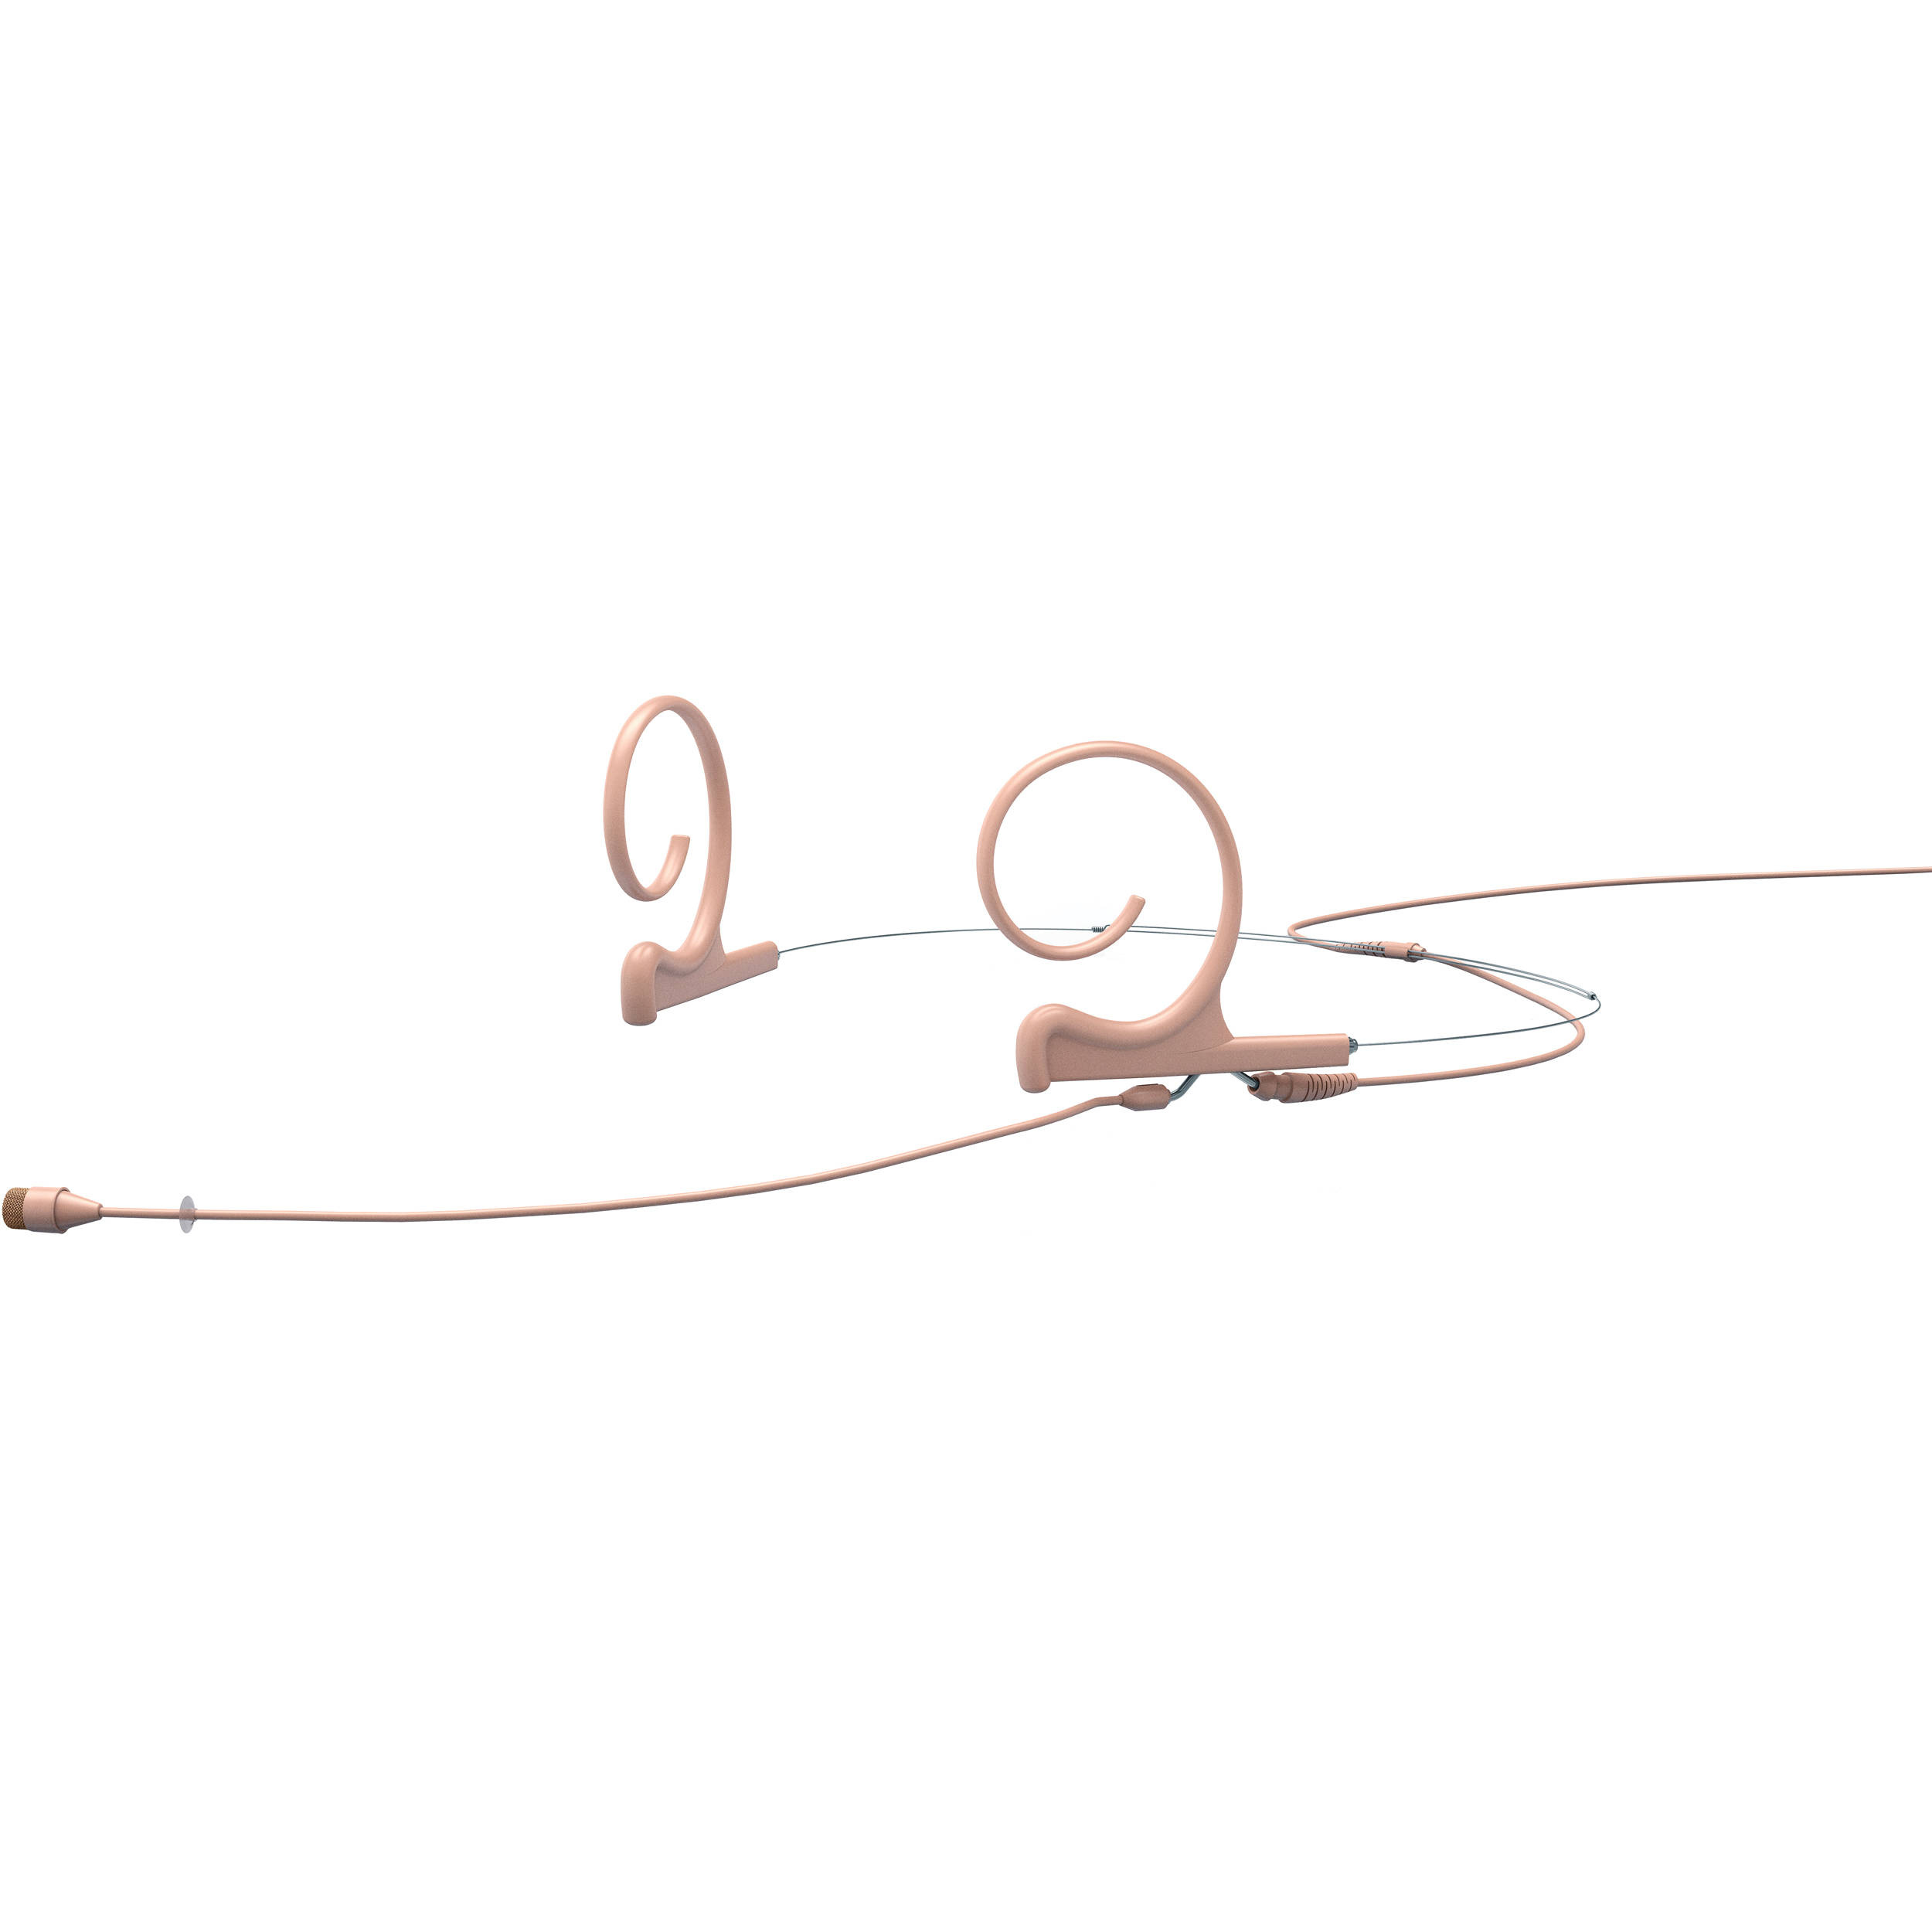 DPA Microphones d:fine 66 2-Ear Omnidirectional Headset Microphone (Beige)